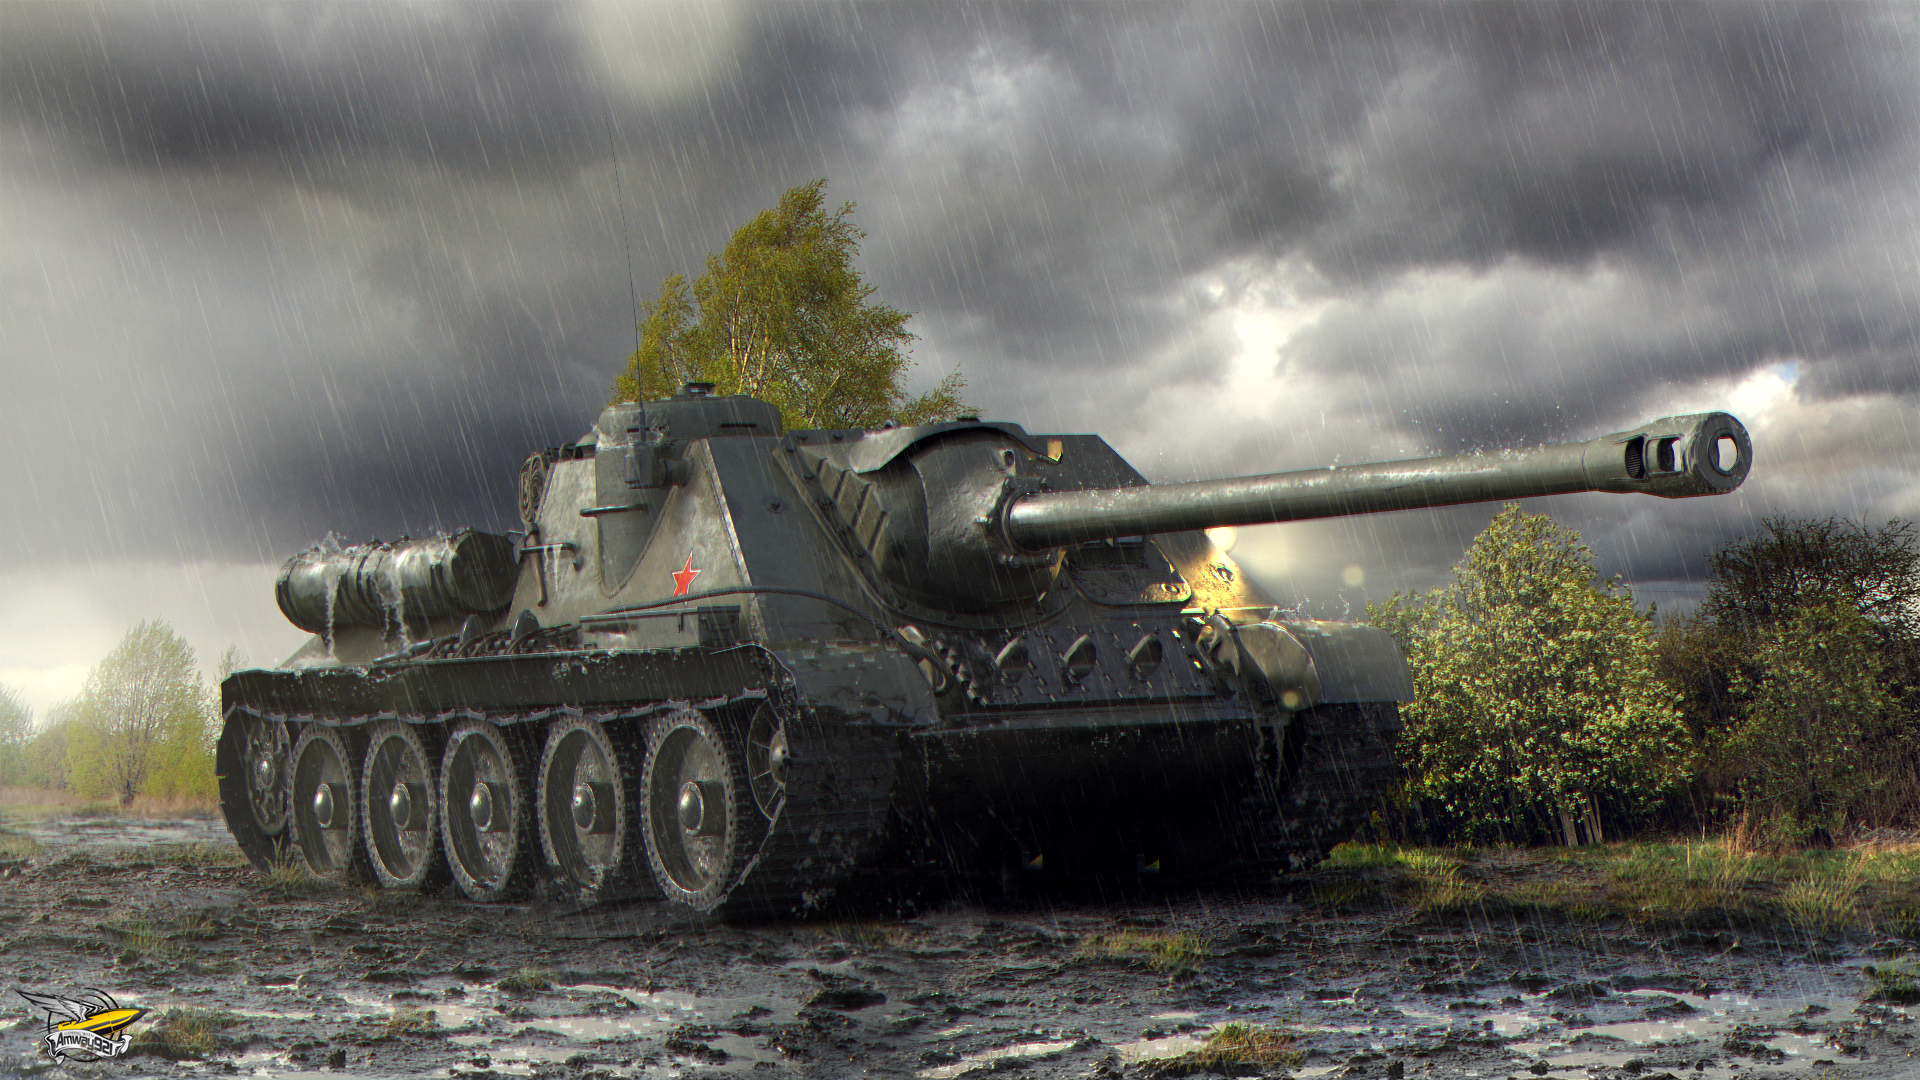 su 100 world of tanks wallpapers (5 wallpapers) – wallpapers 4k